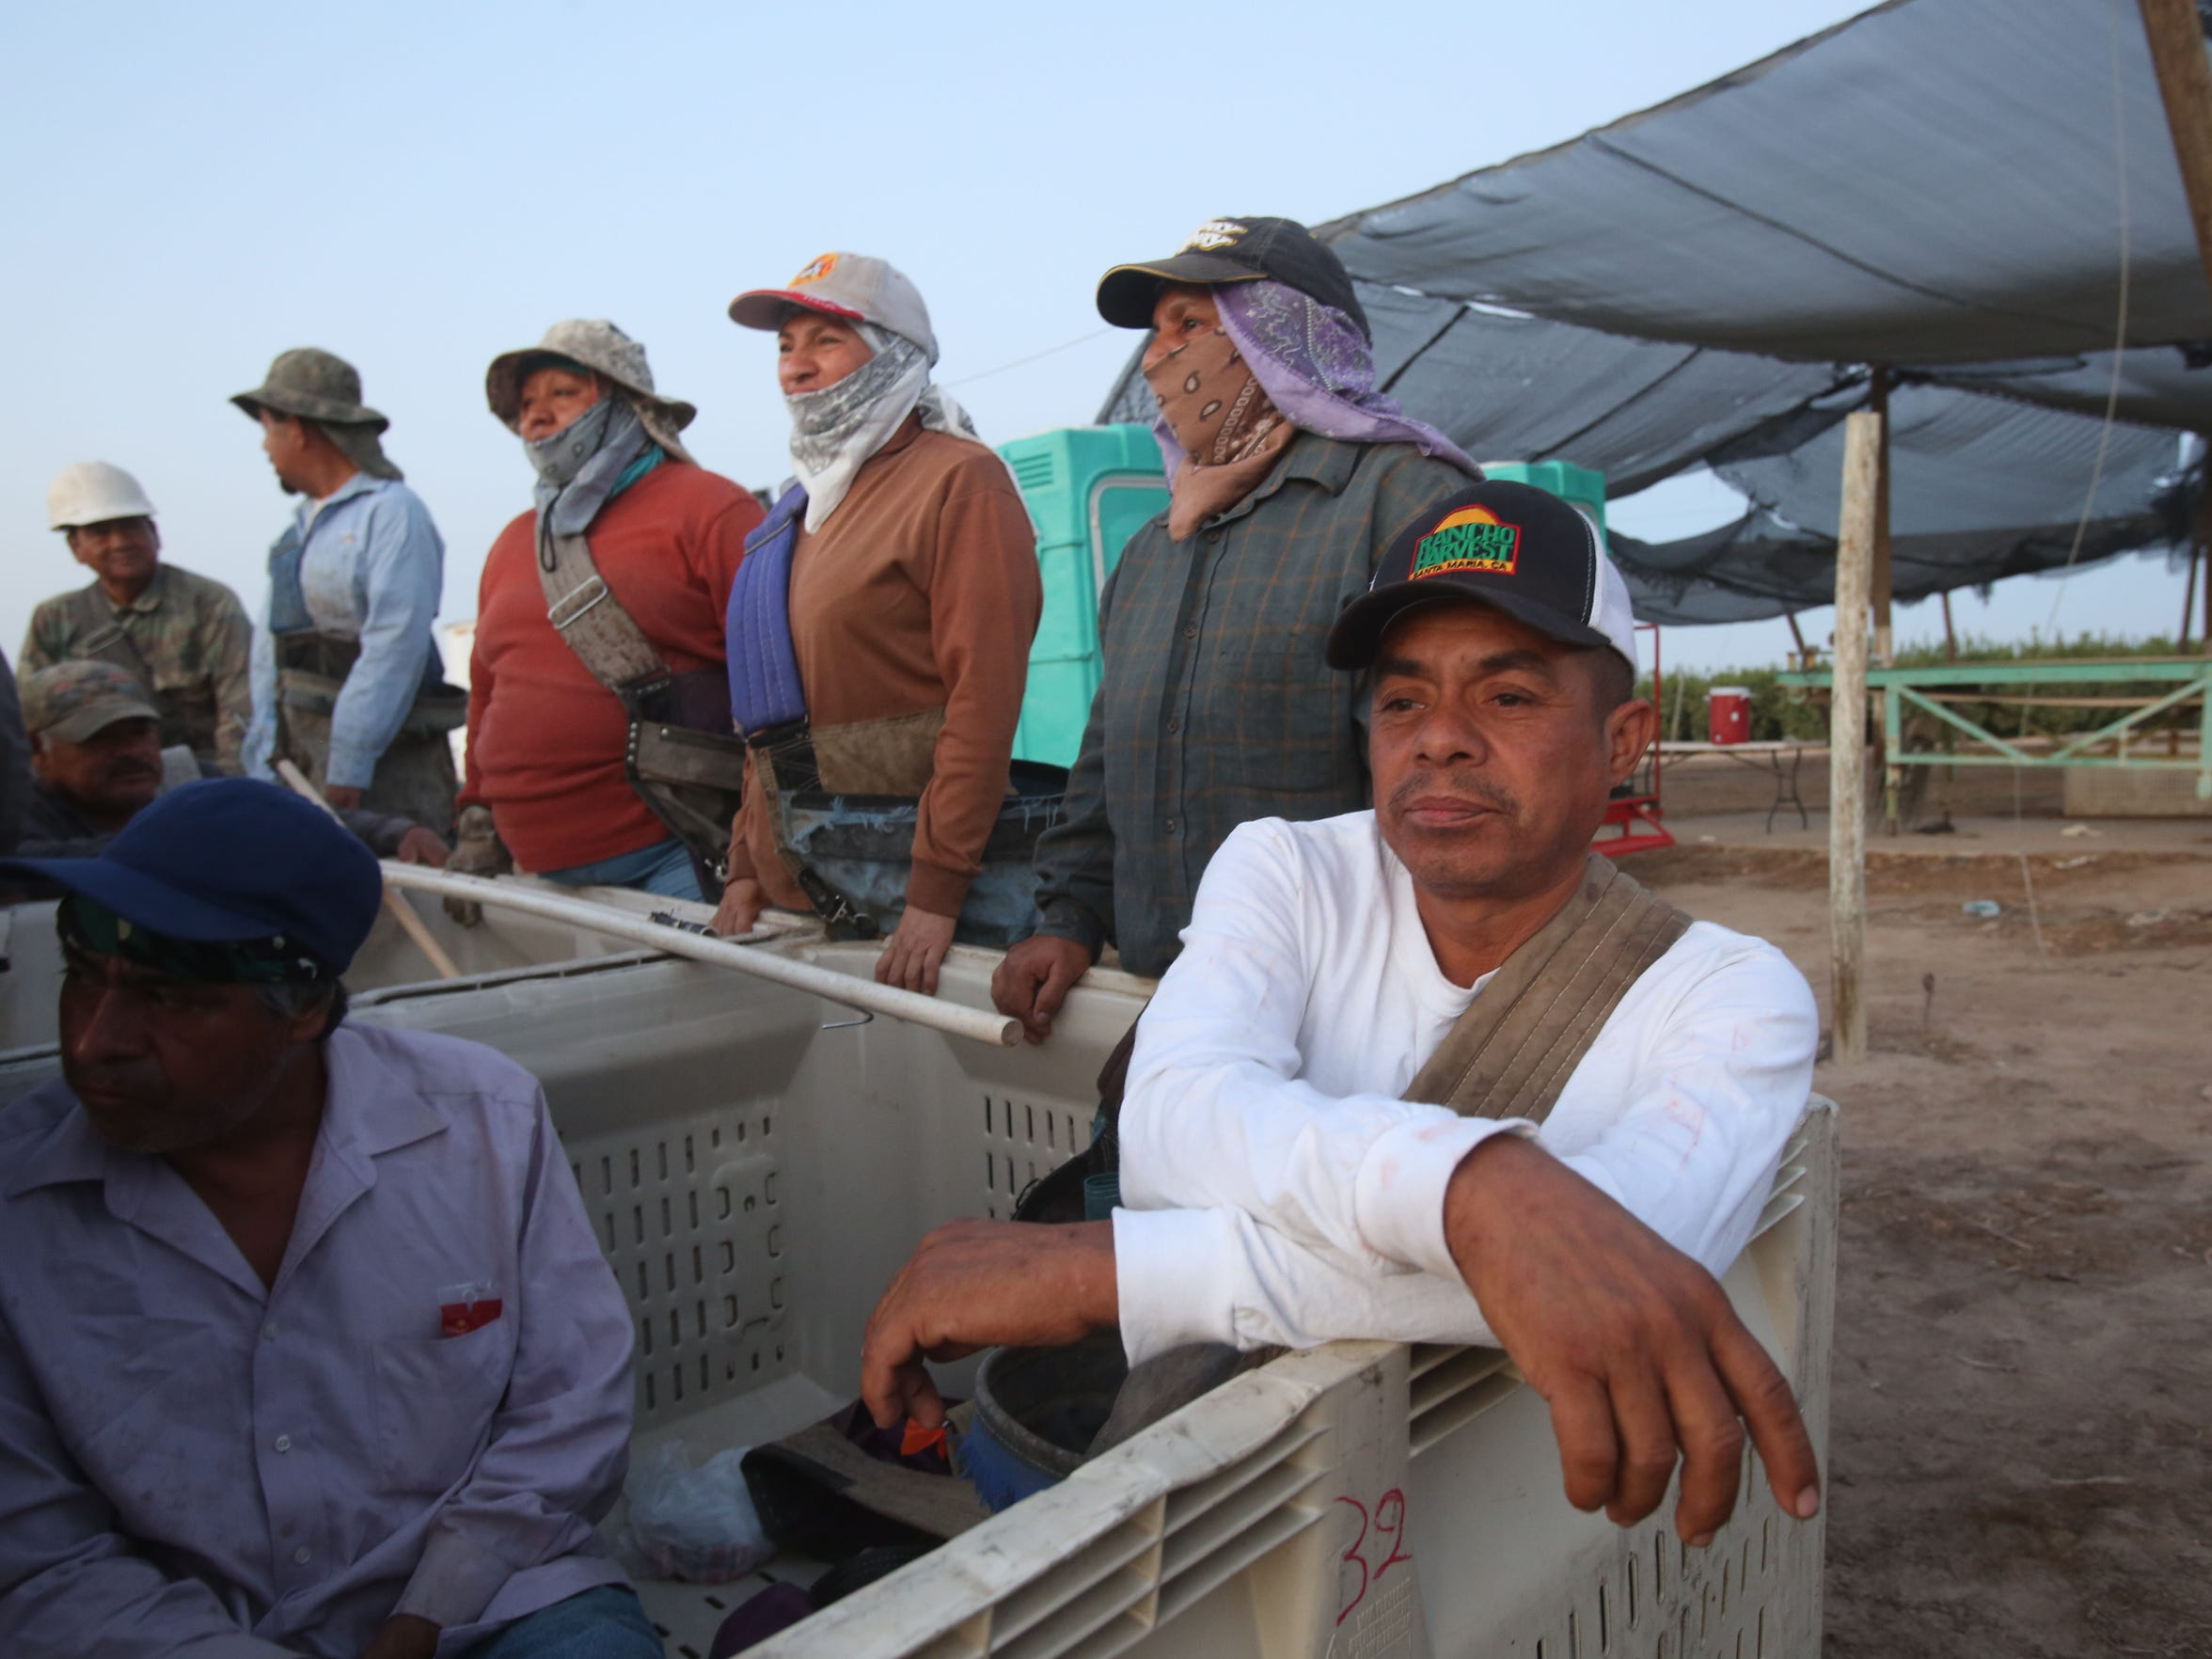 Francisco Alvarez Bautista gets ready to begin his labor in the fields at the crack of dawn with a dozen other workers near the Salton Sea.